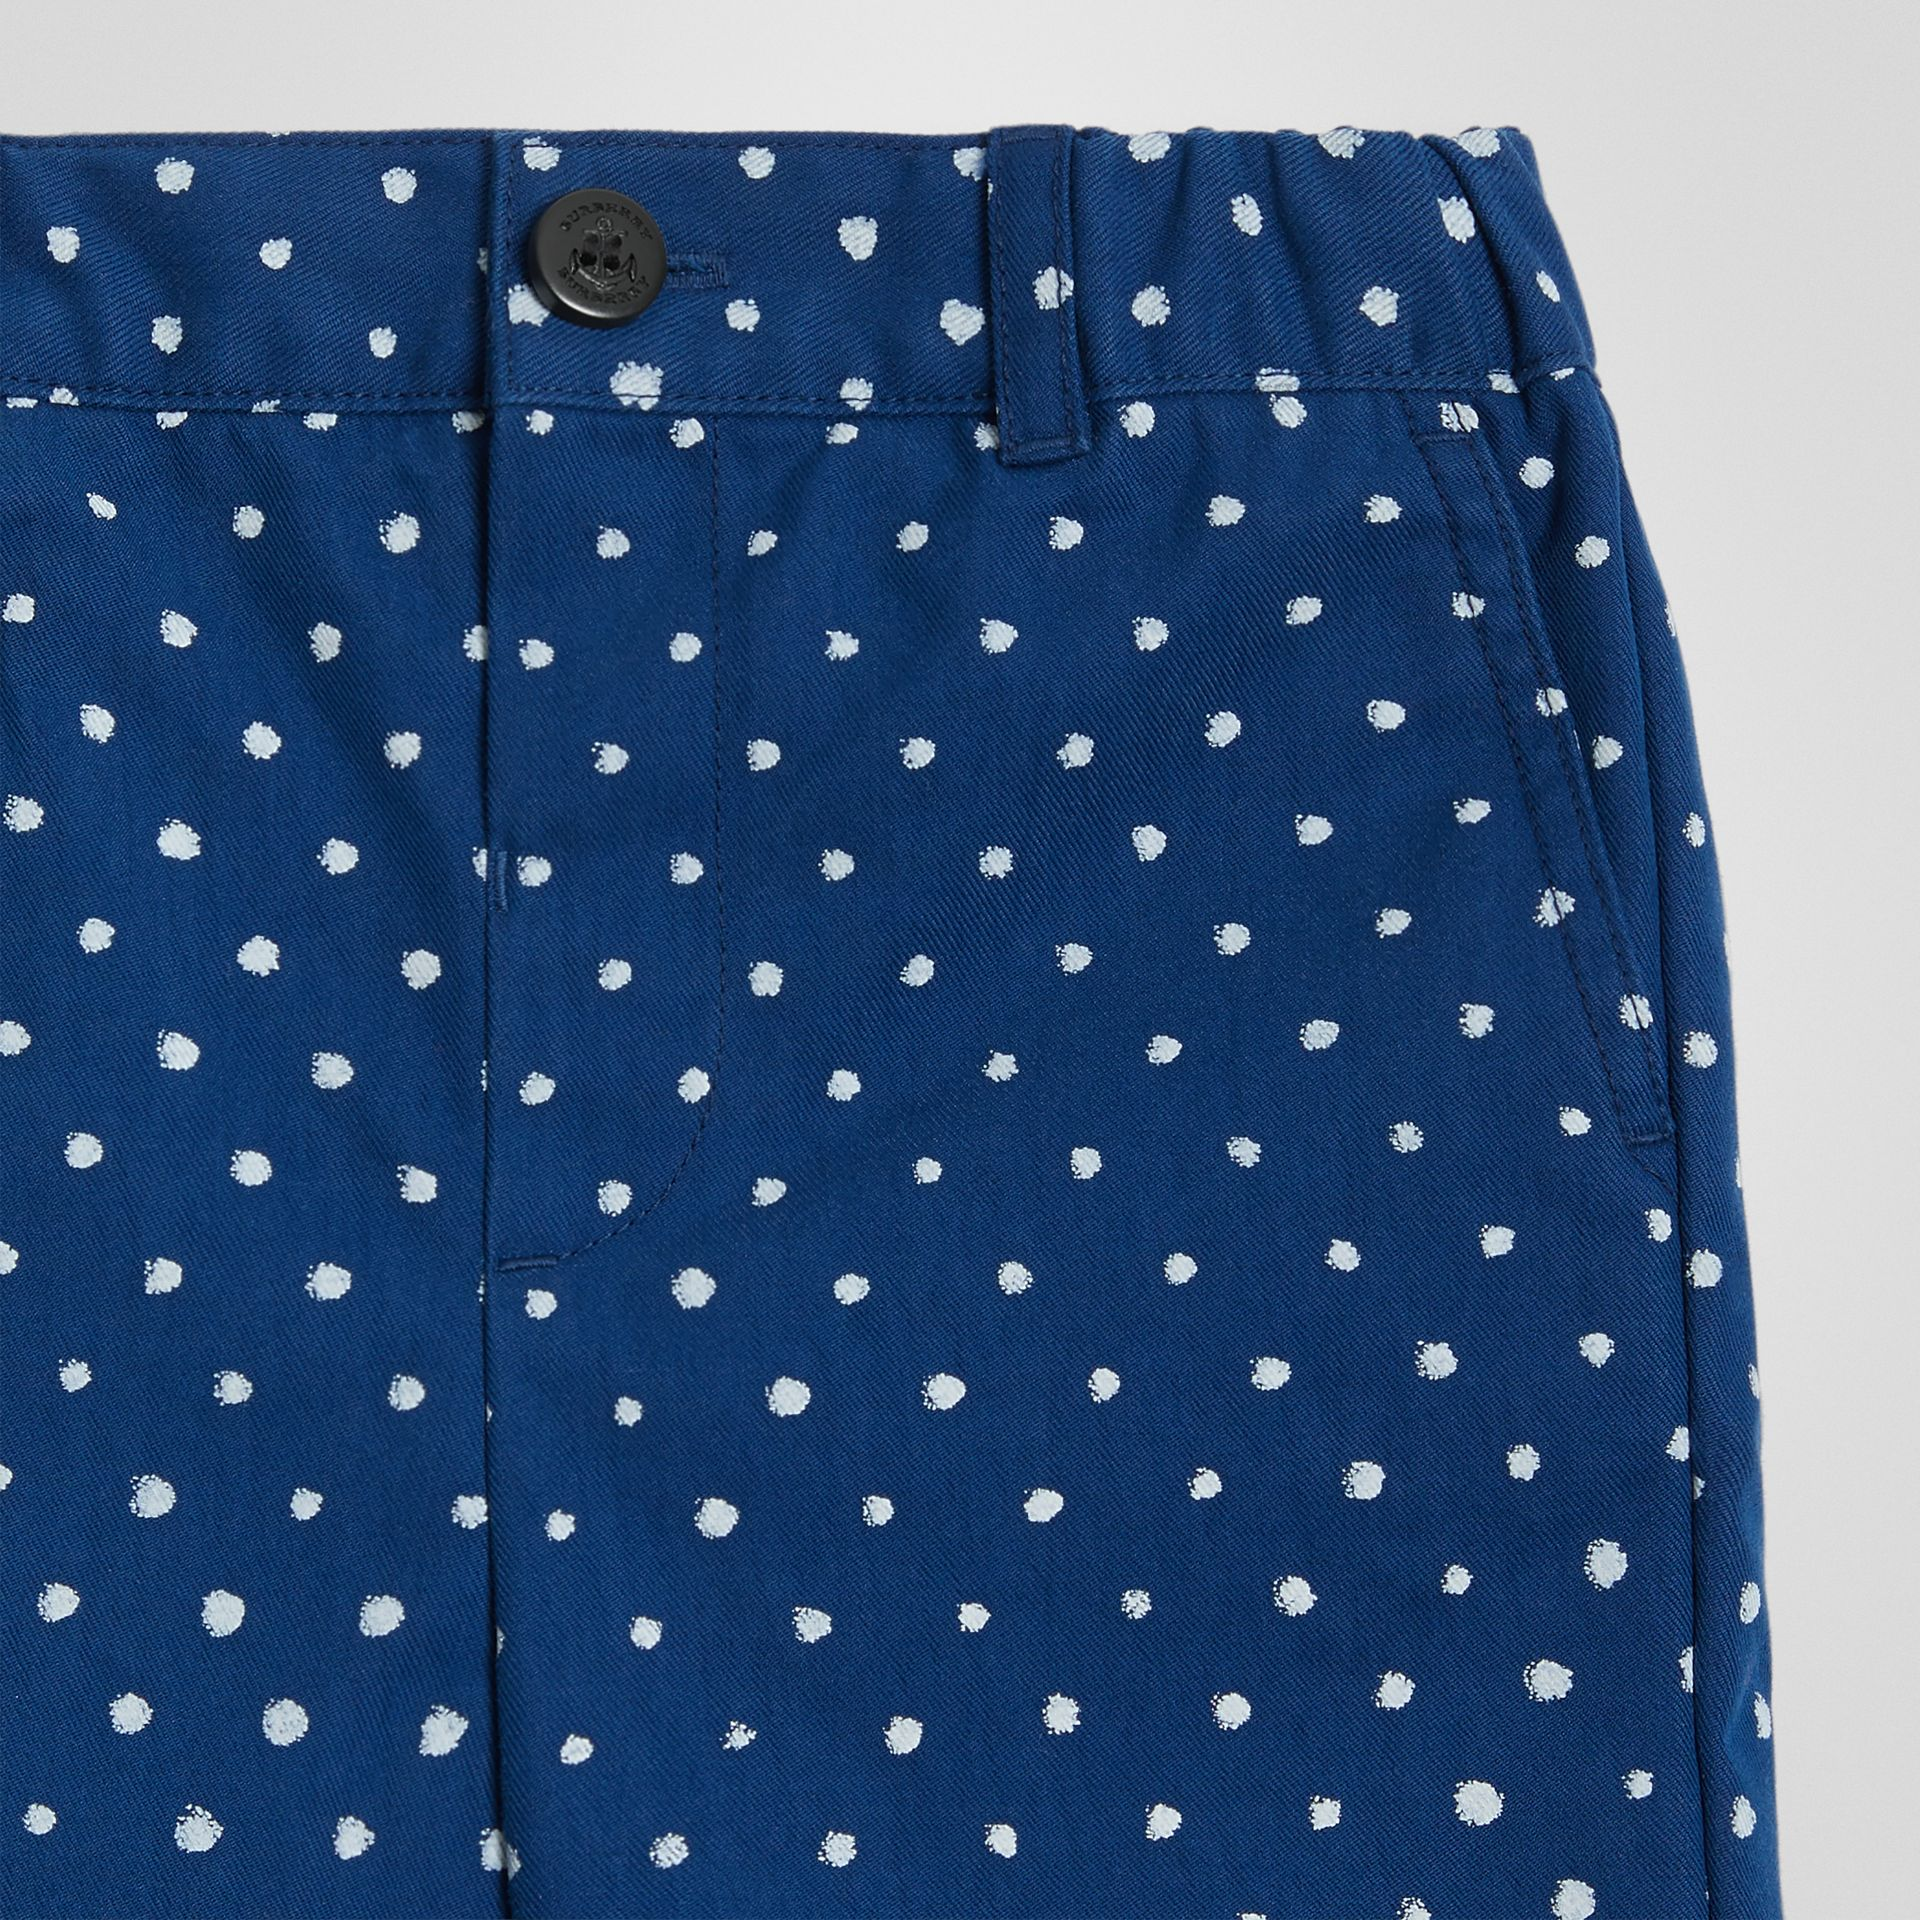 Spot Print Cotton Blend Shorts in Bright Navy - Children | Burberry Canada - gallery image 4